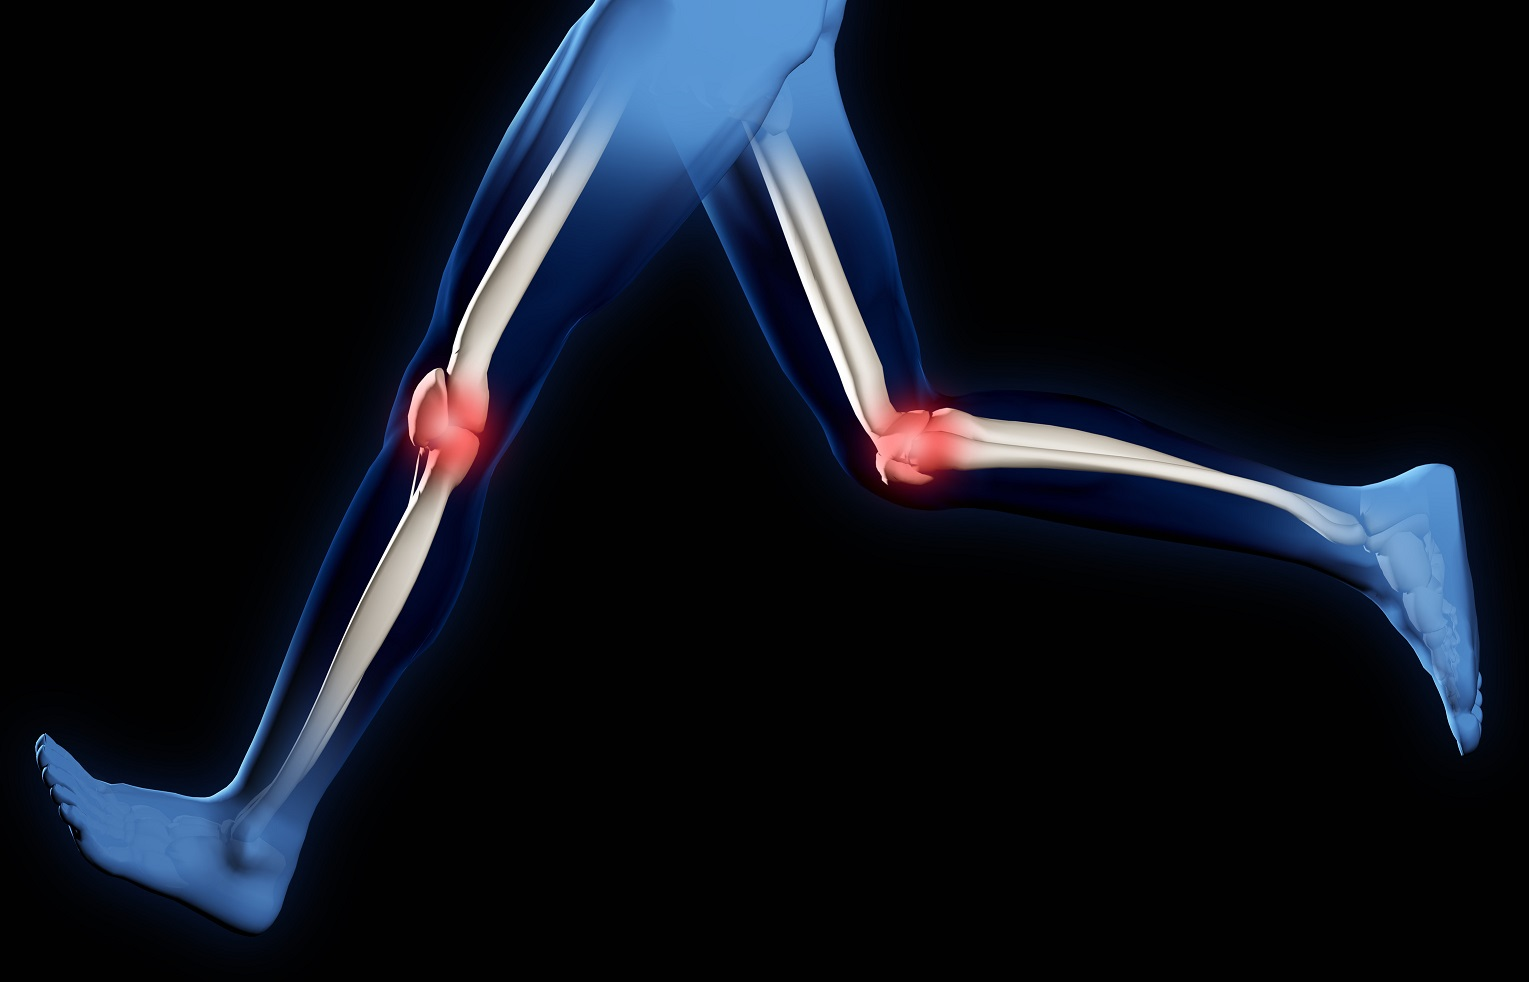 pain-in-knee-joints-l_50